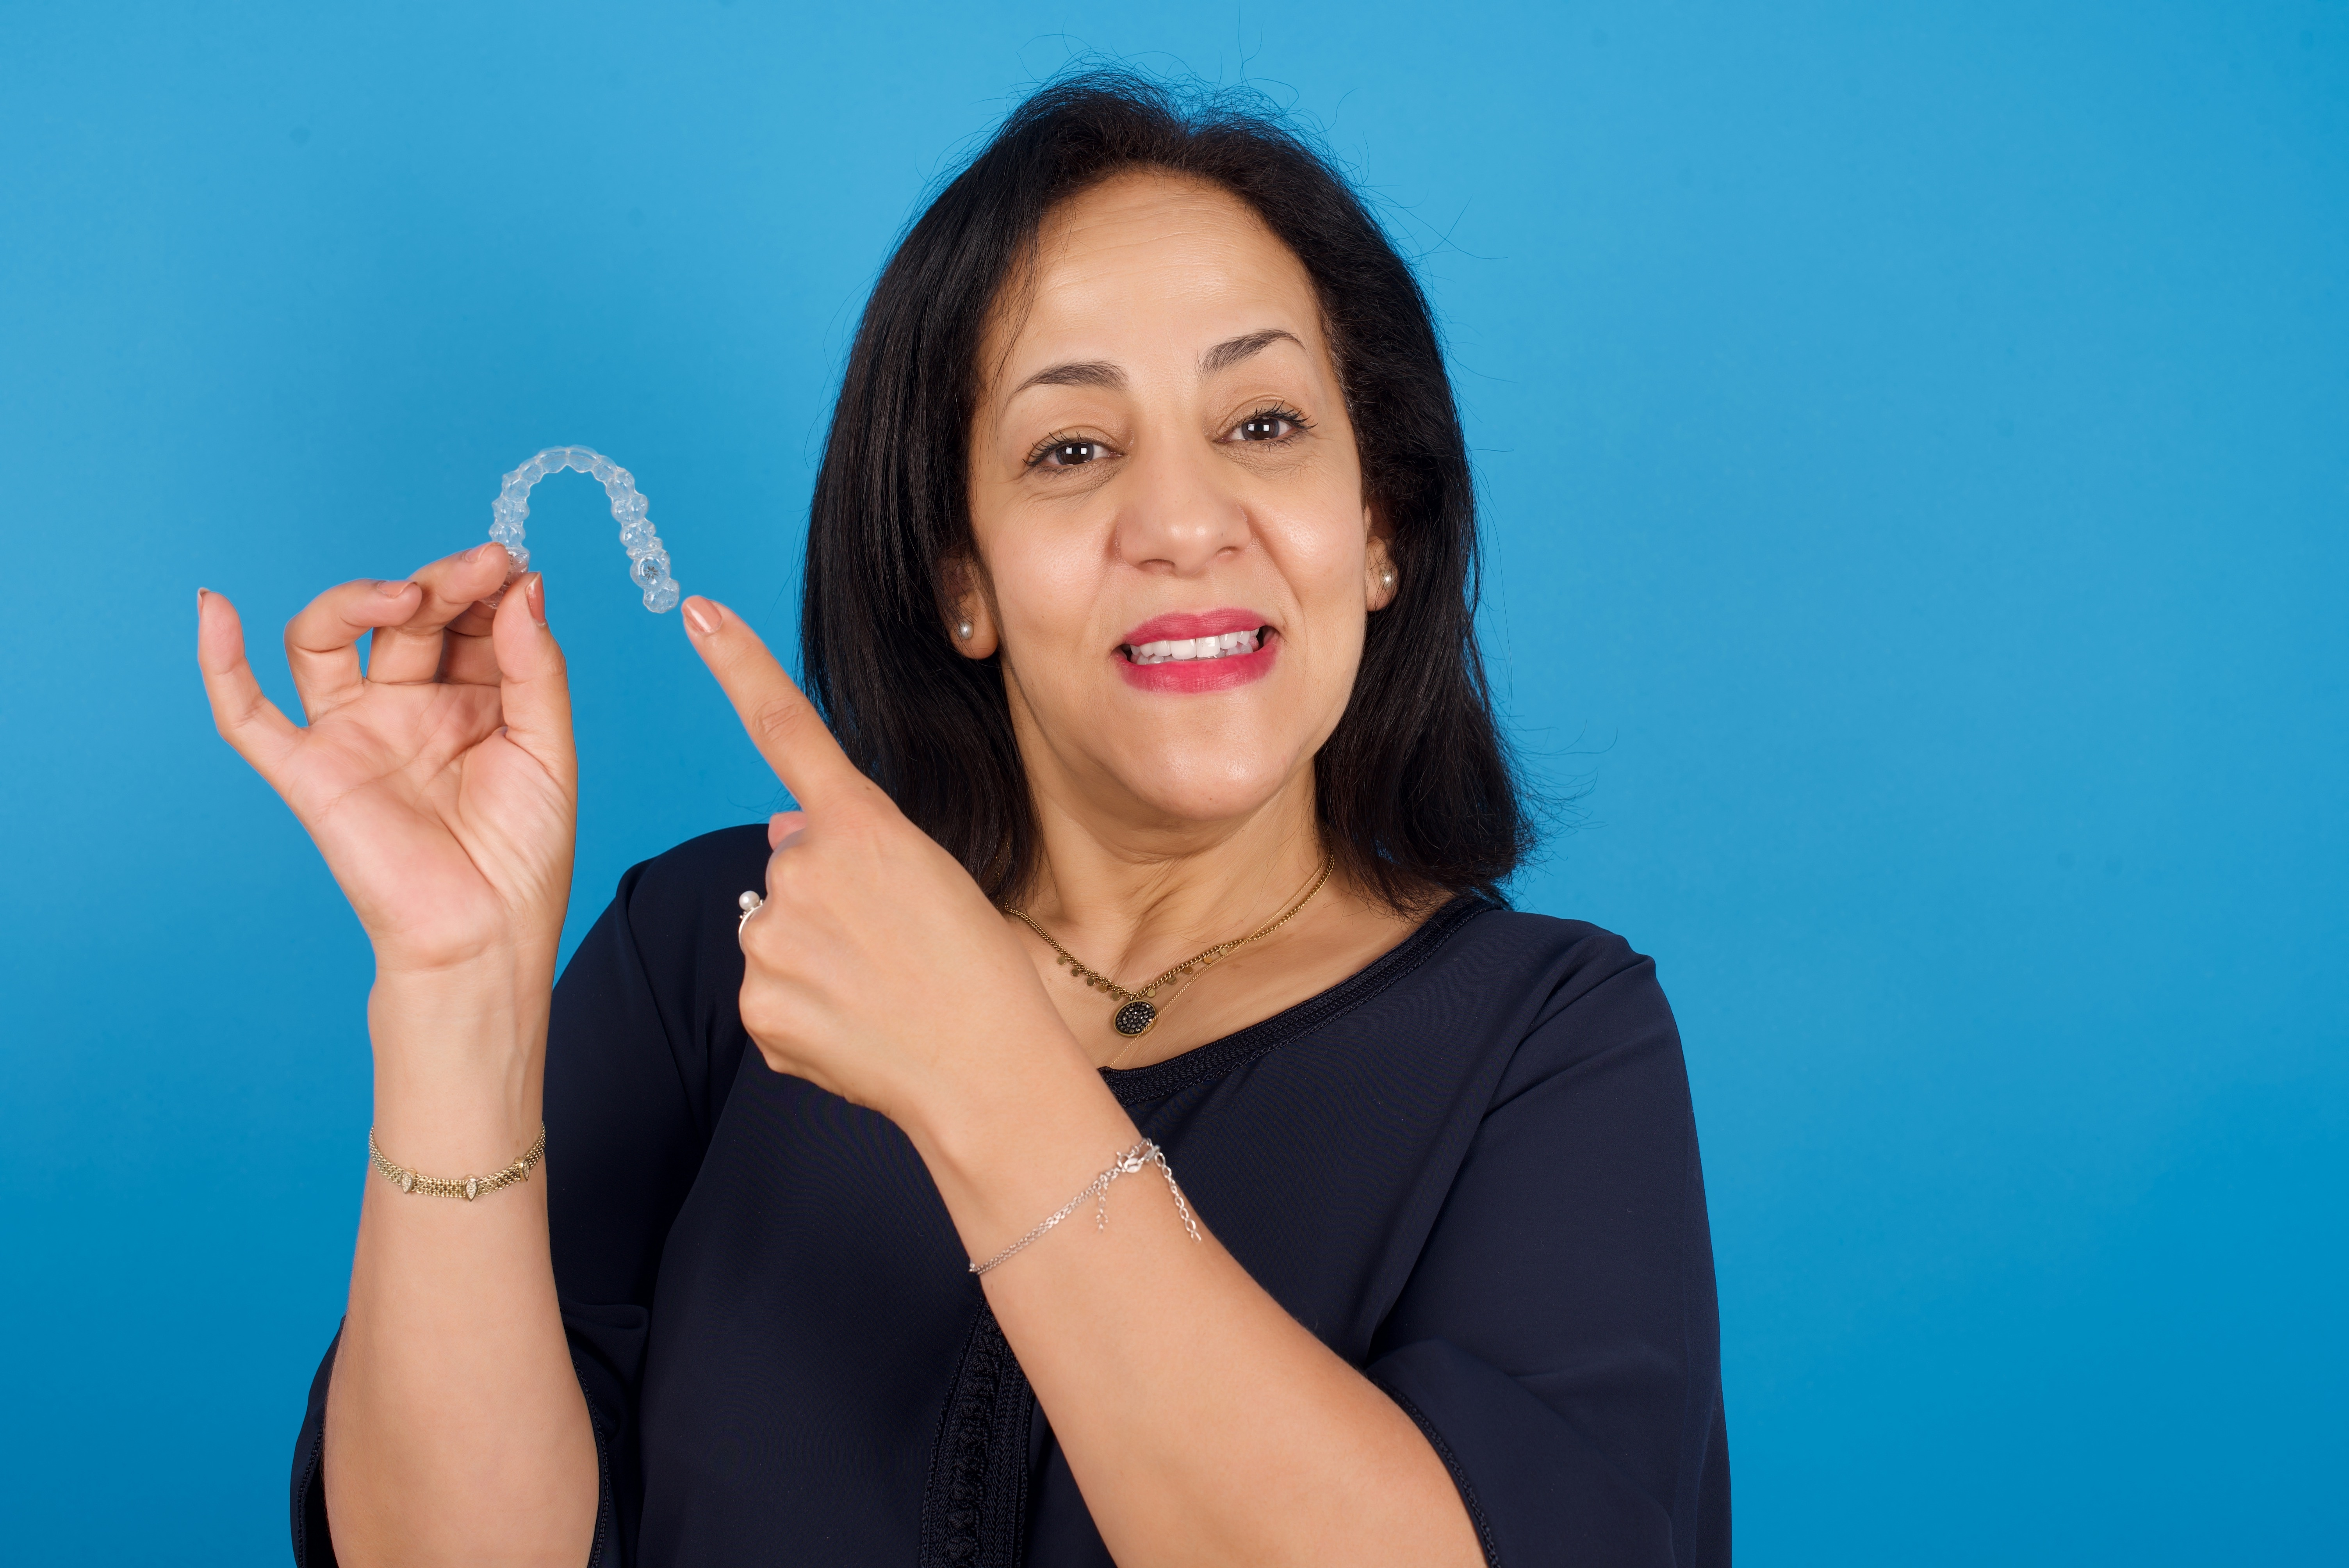 fort worth removable aligners